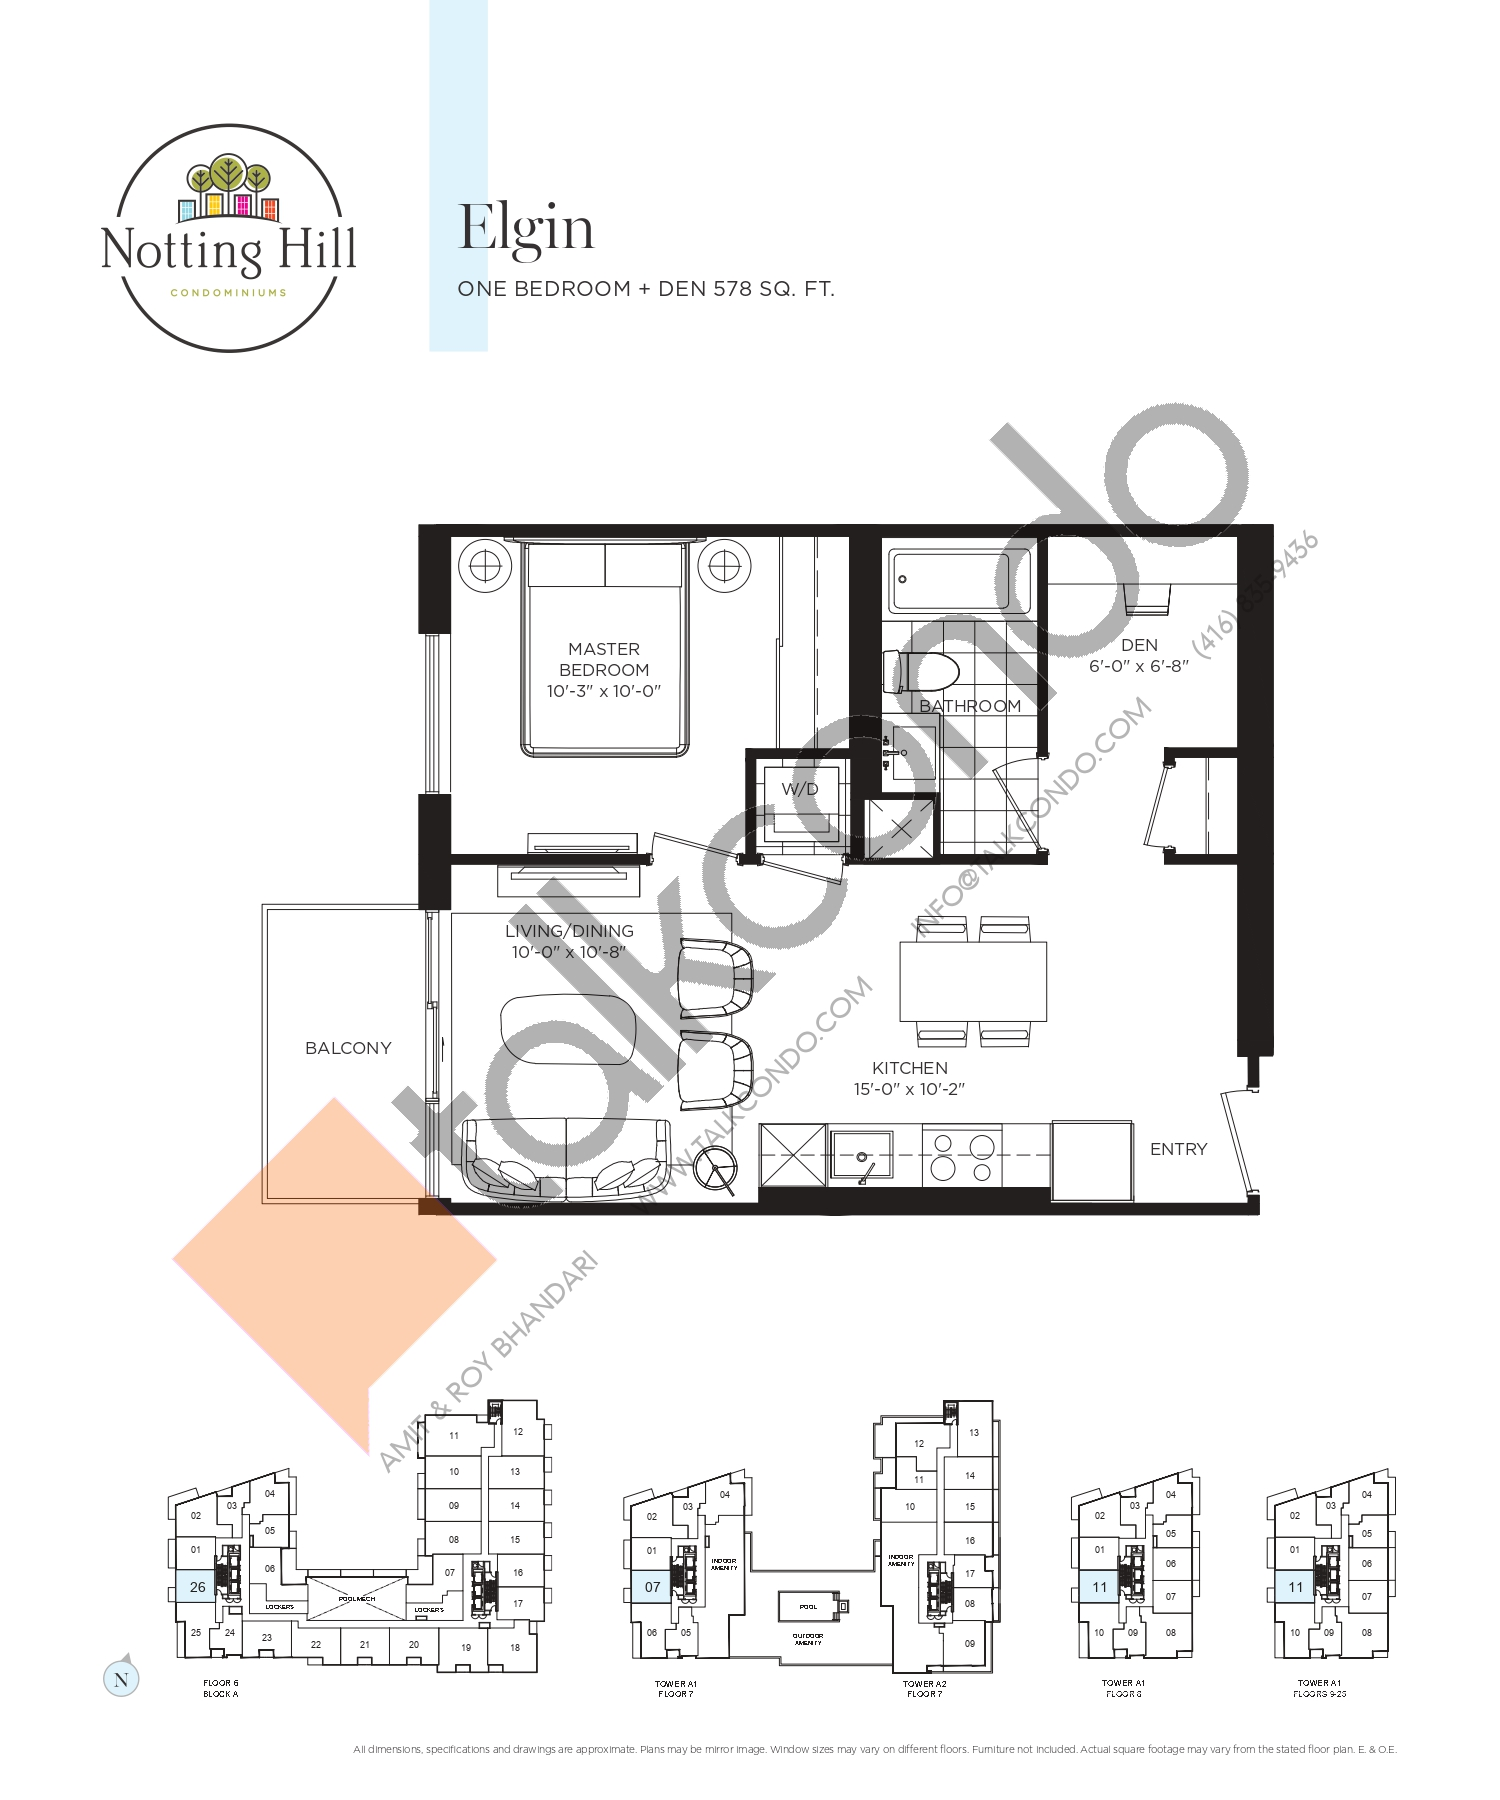 Elgin Floor Plan at Notting Hill Phase 2 Condos - 578 sq.ft